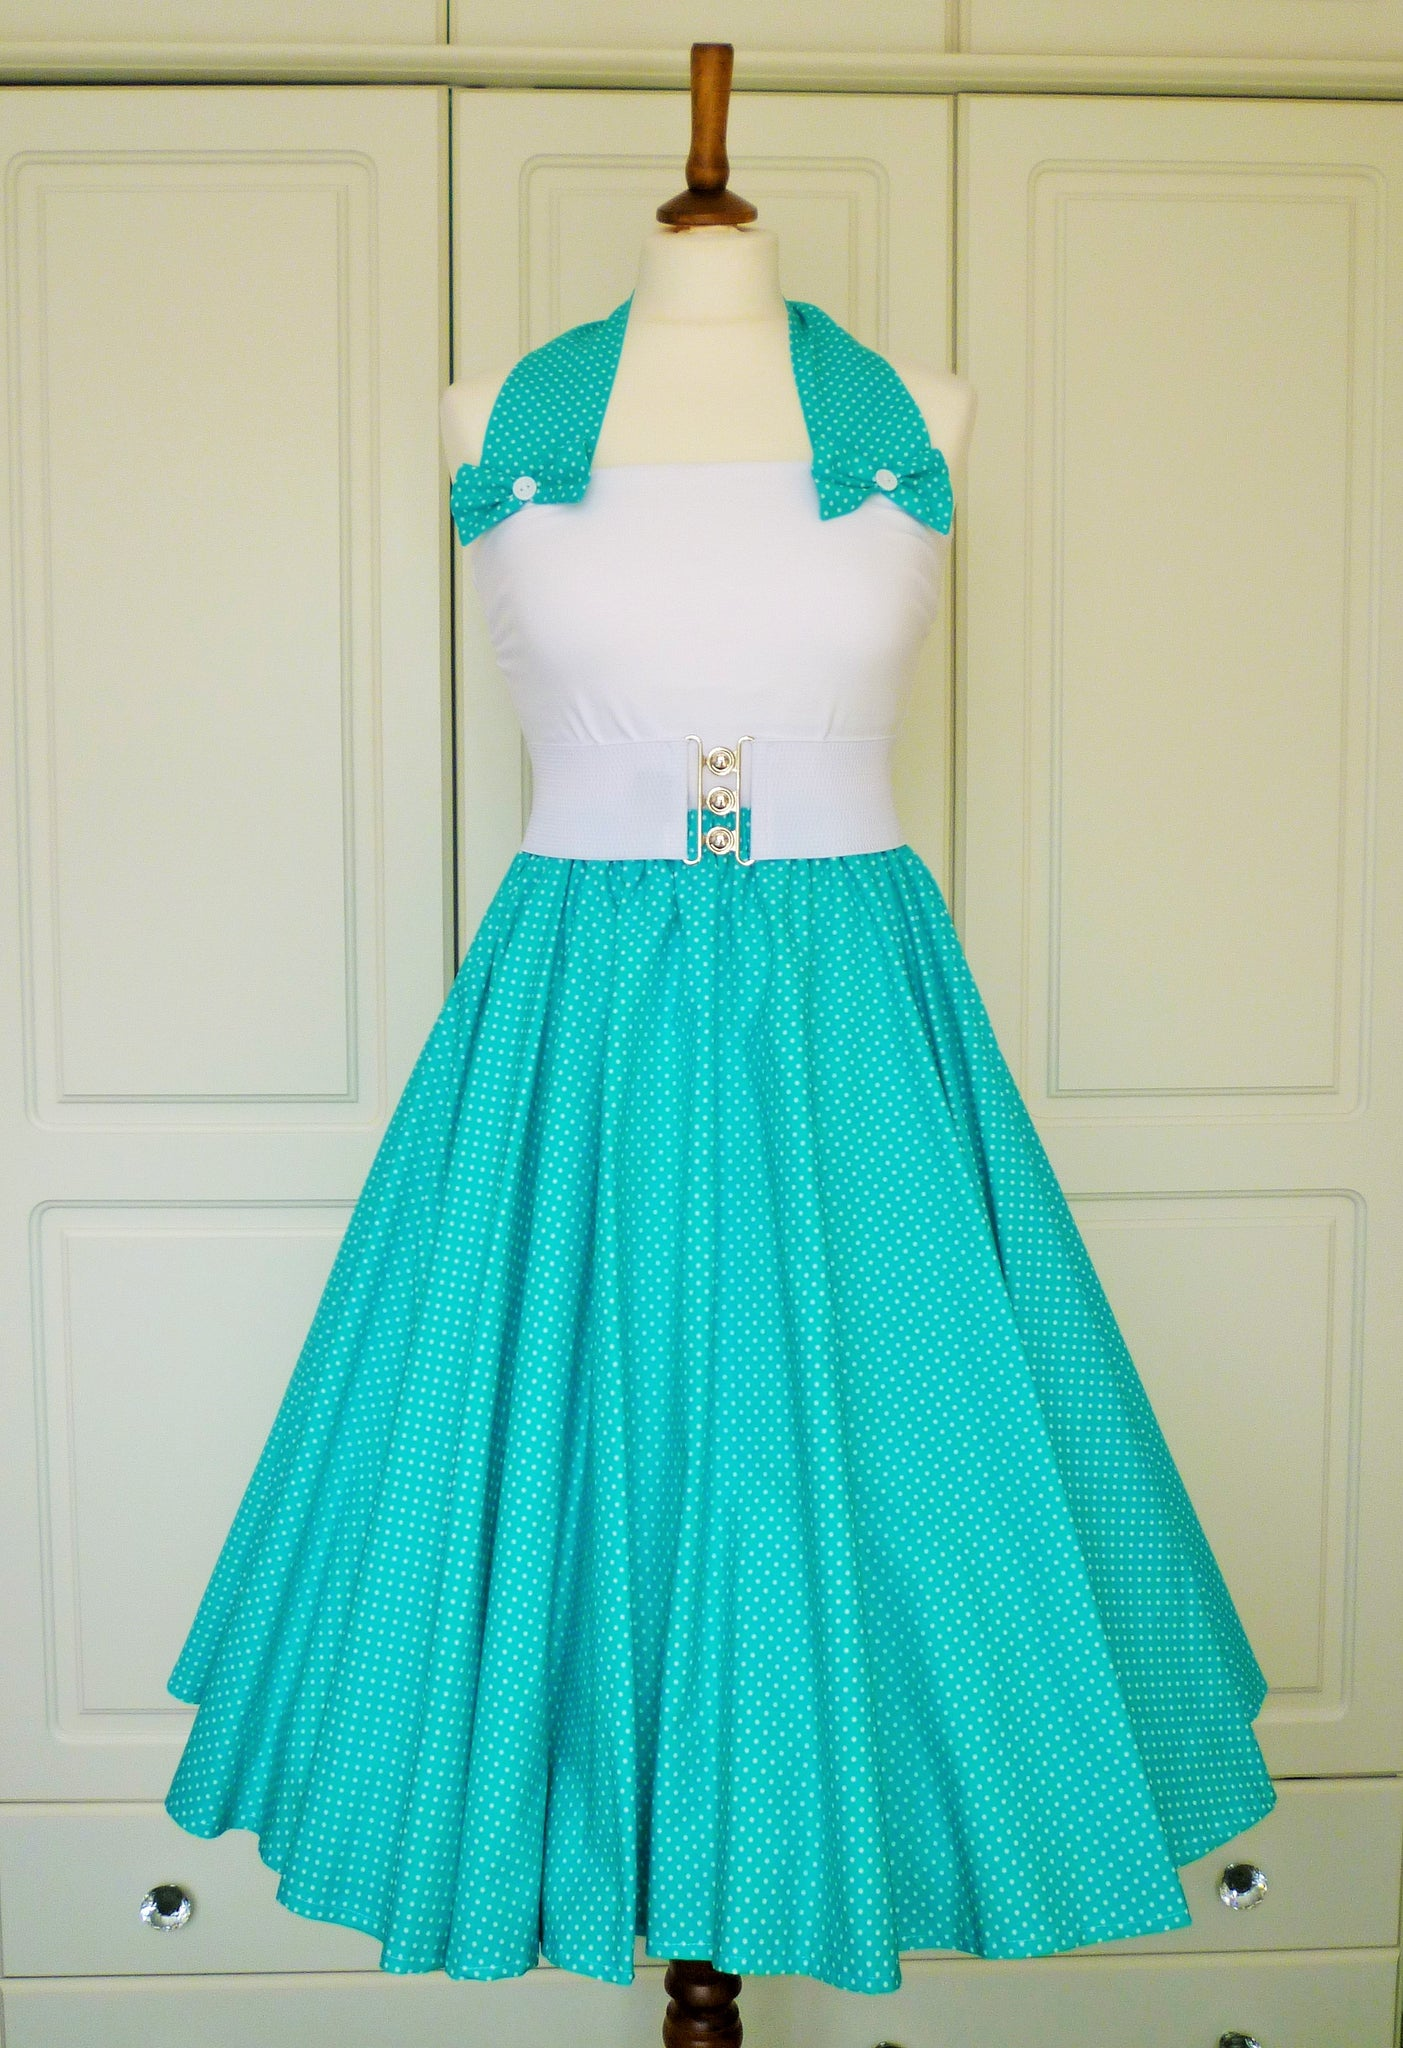 Peggy Circle Skirt- Turquoise and White Pin Spots